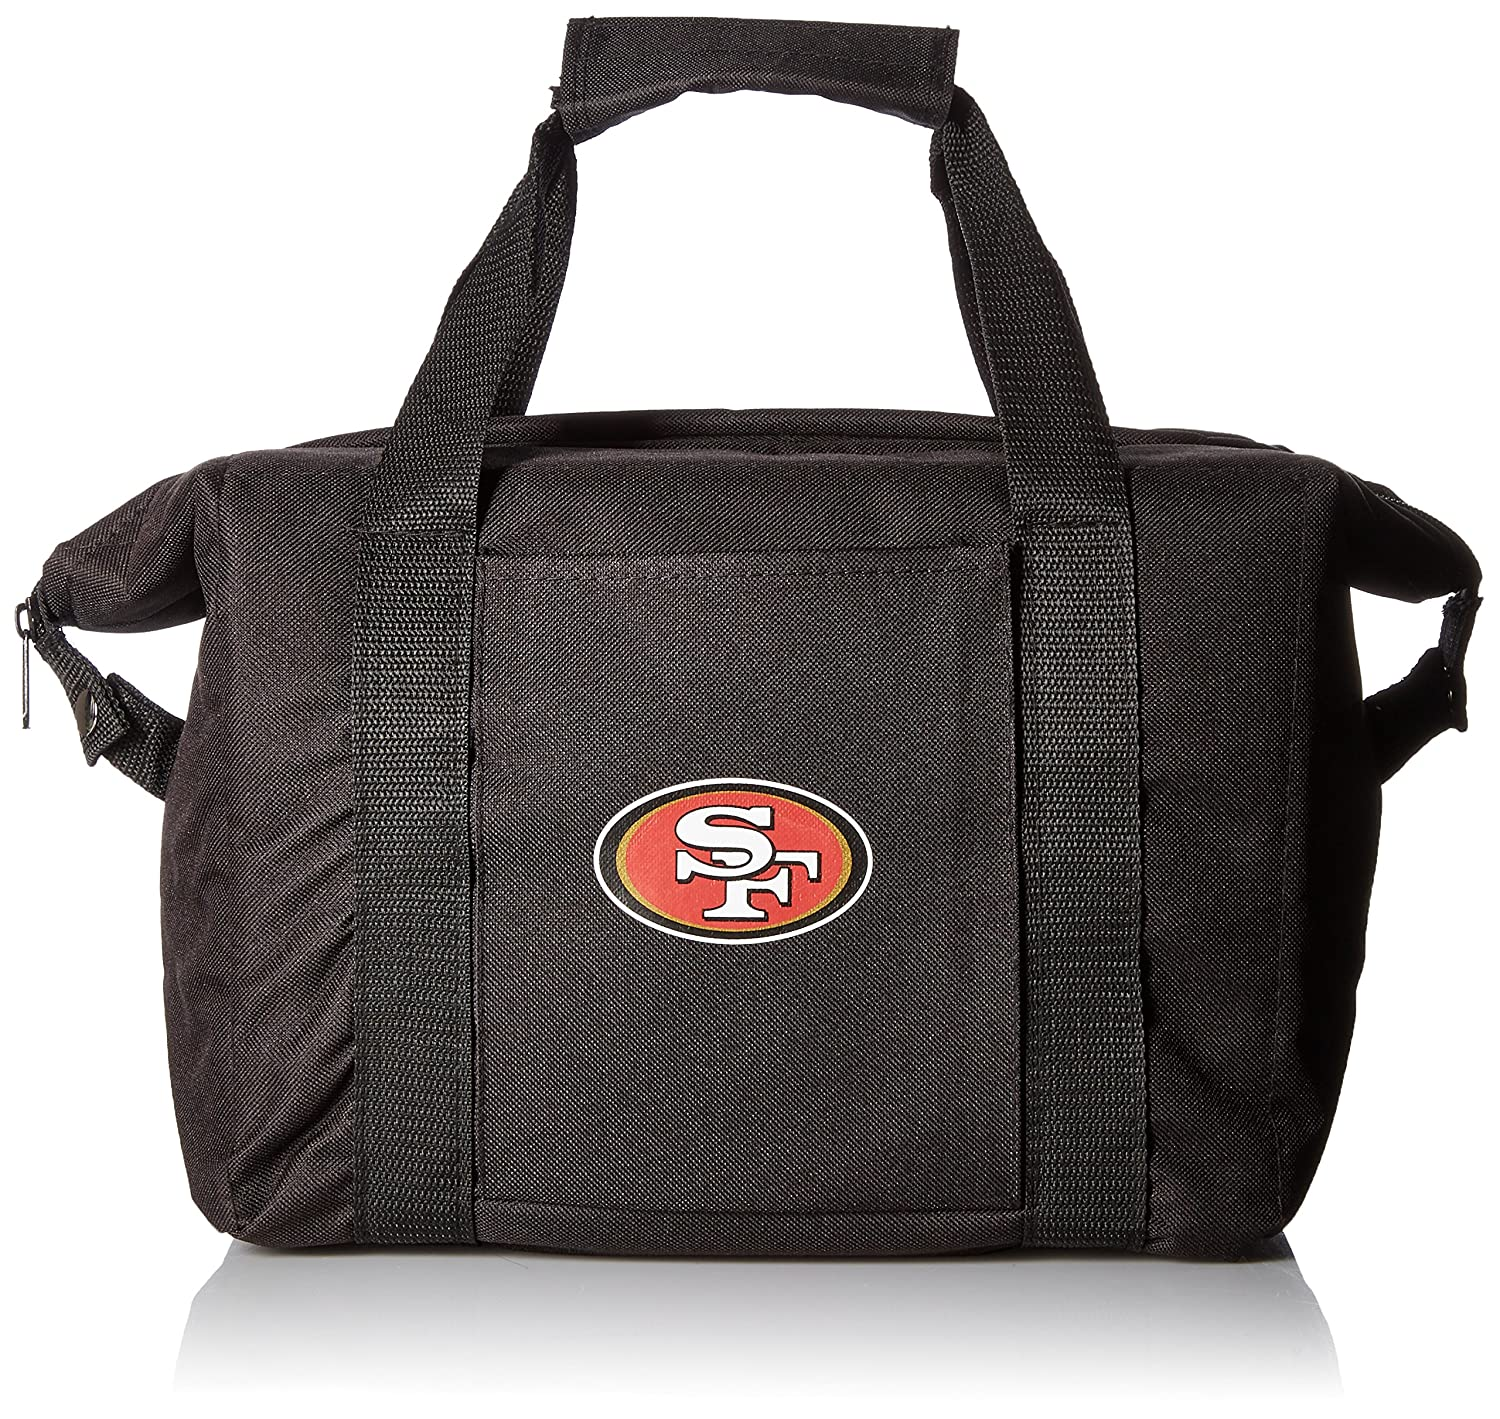 NFL San Francisco 49ers Koolerバッグ   B002JMGC4A